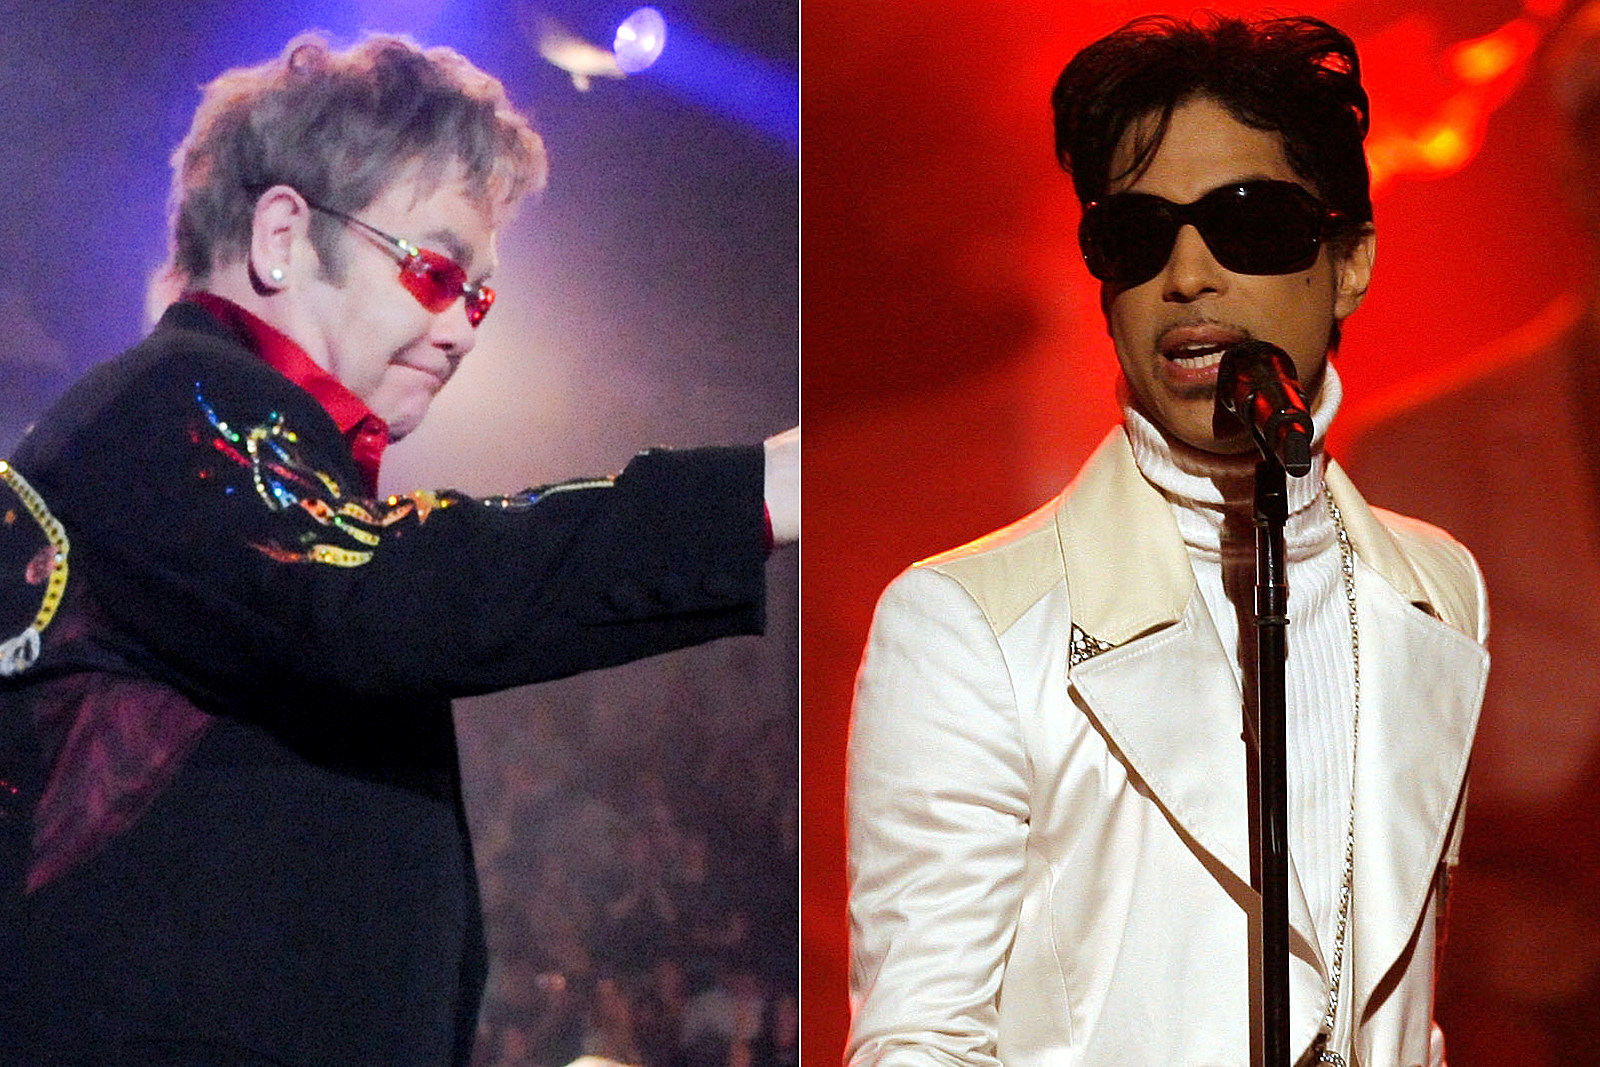 Prince Ghosted Elton John Twice Before They Played Live Together